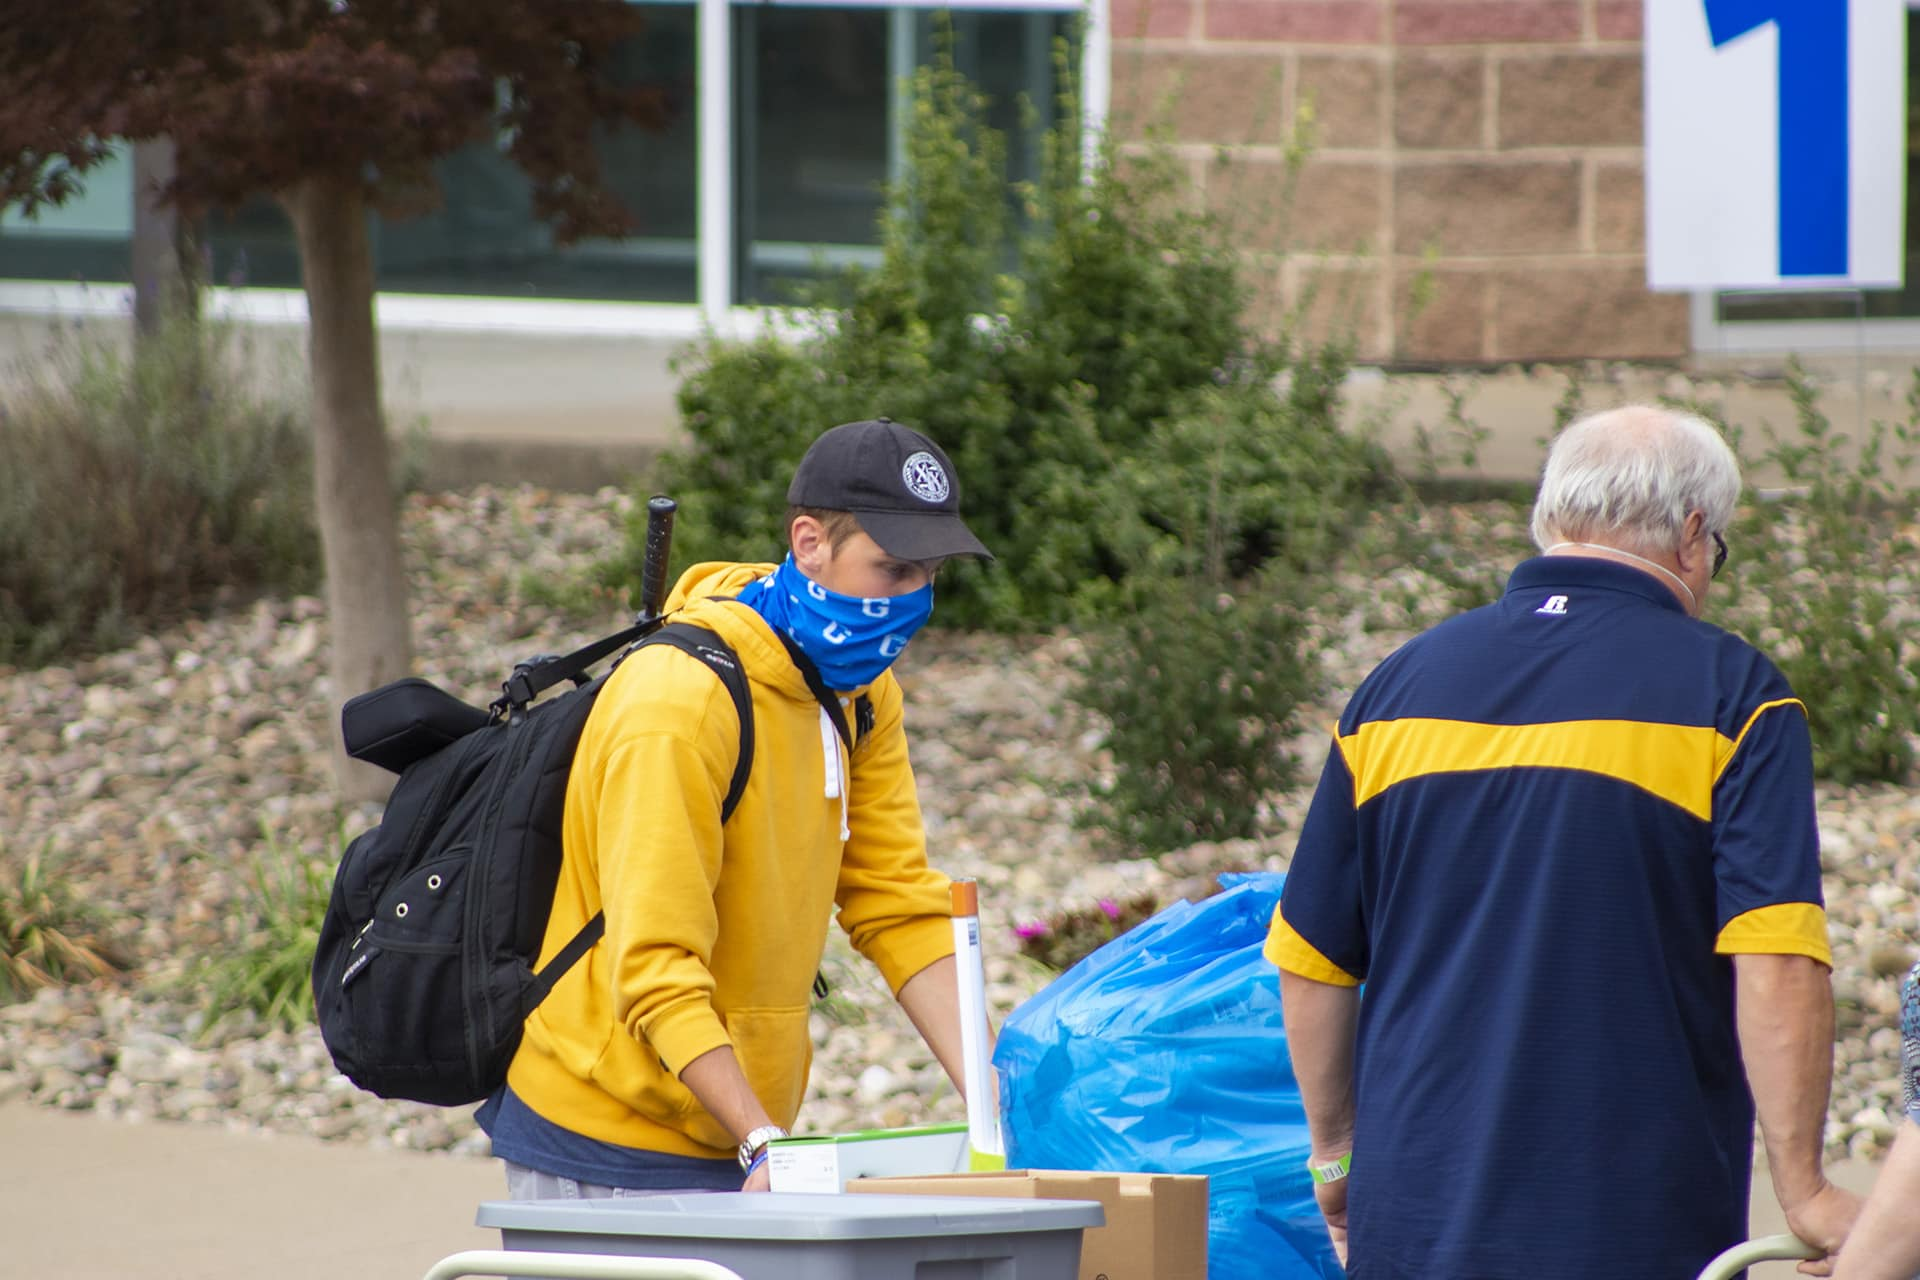 Glenville State College Students Arriving on Campus for Fall Semester